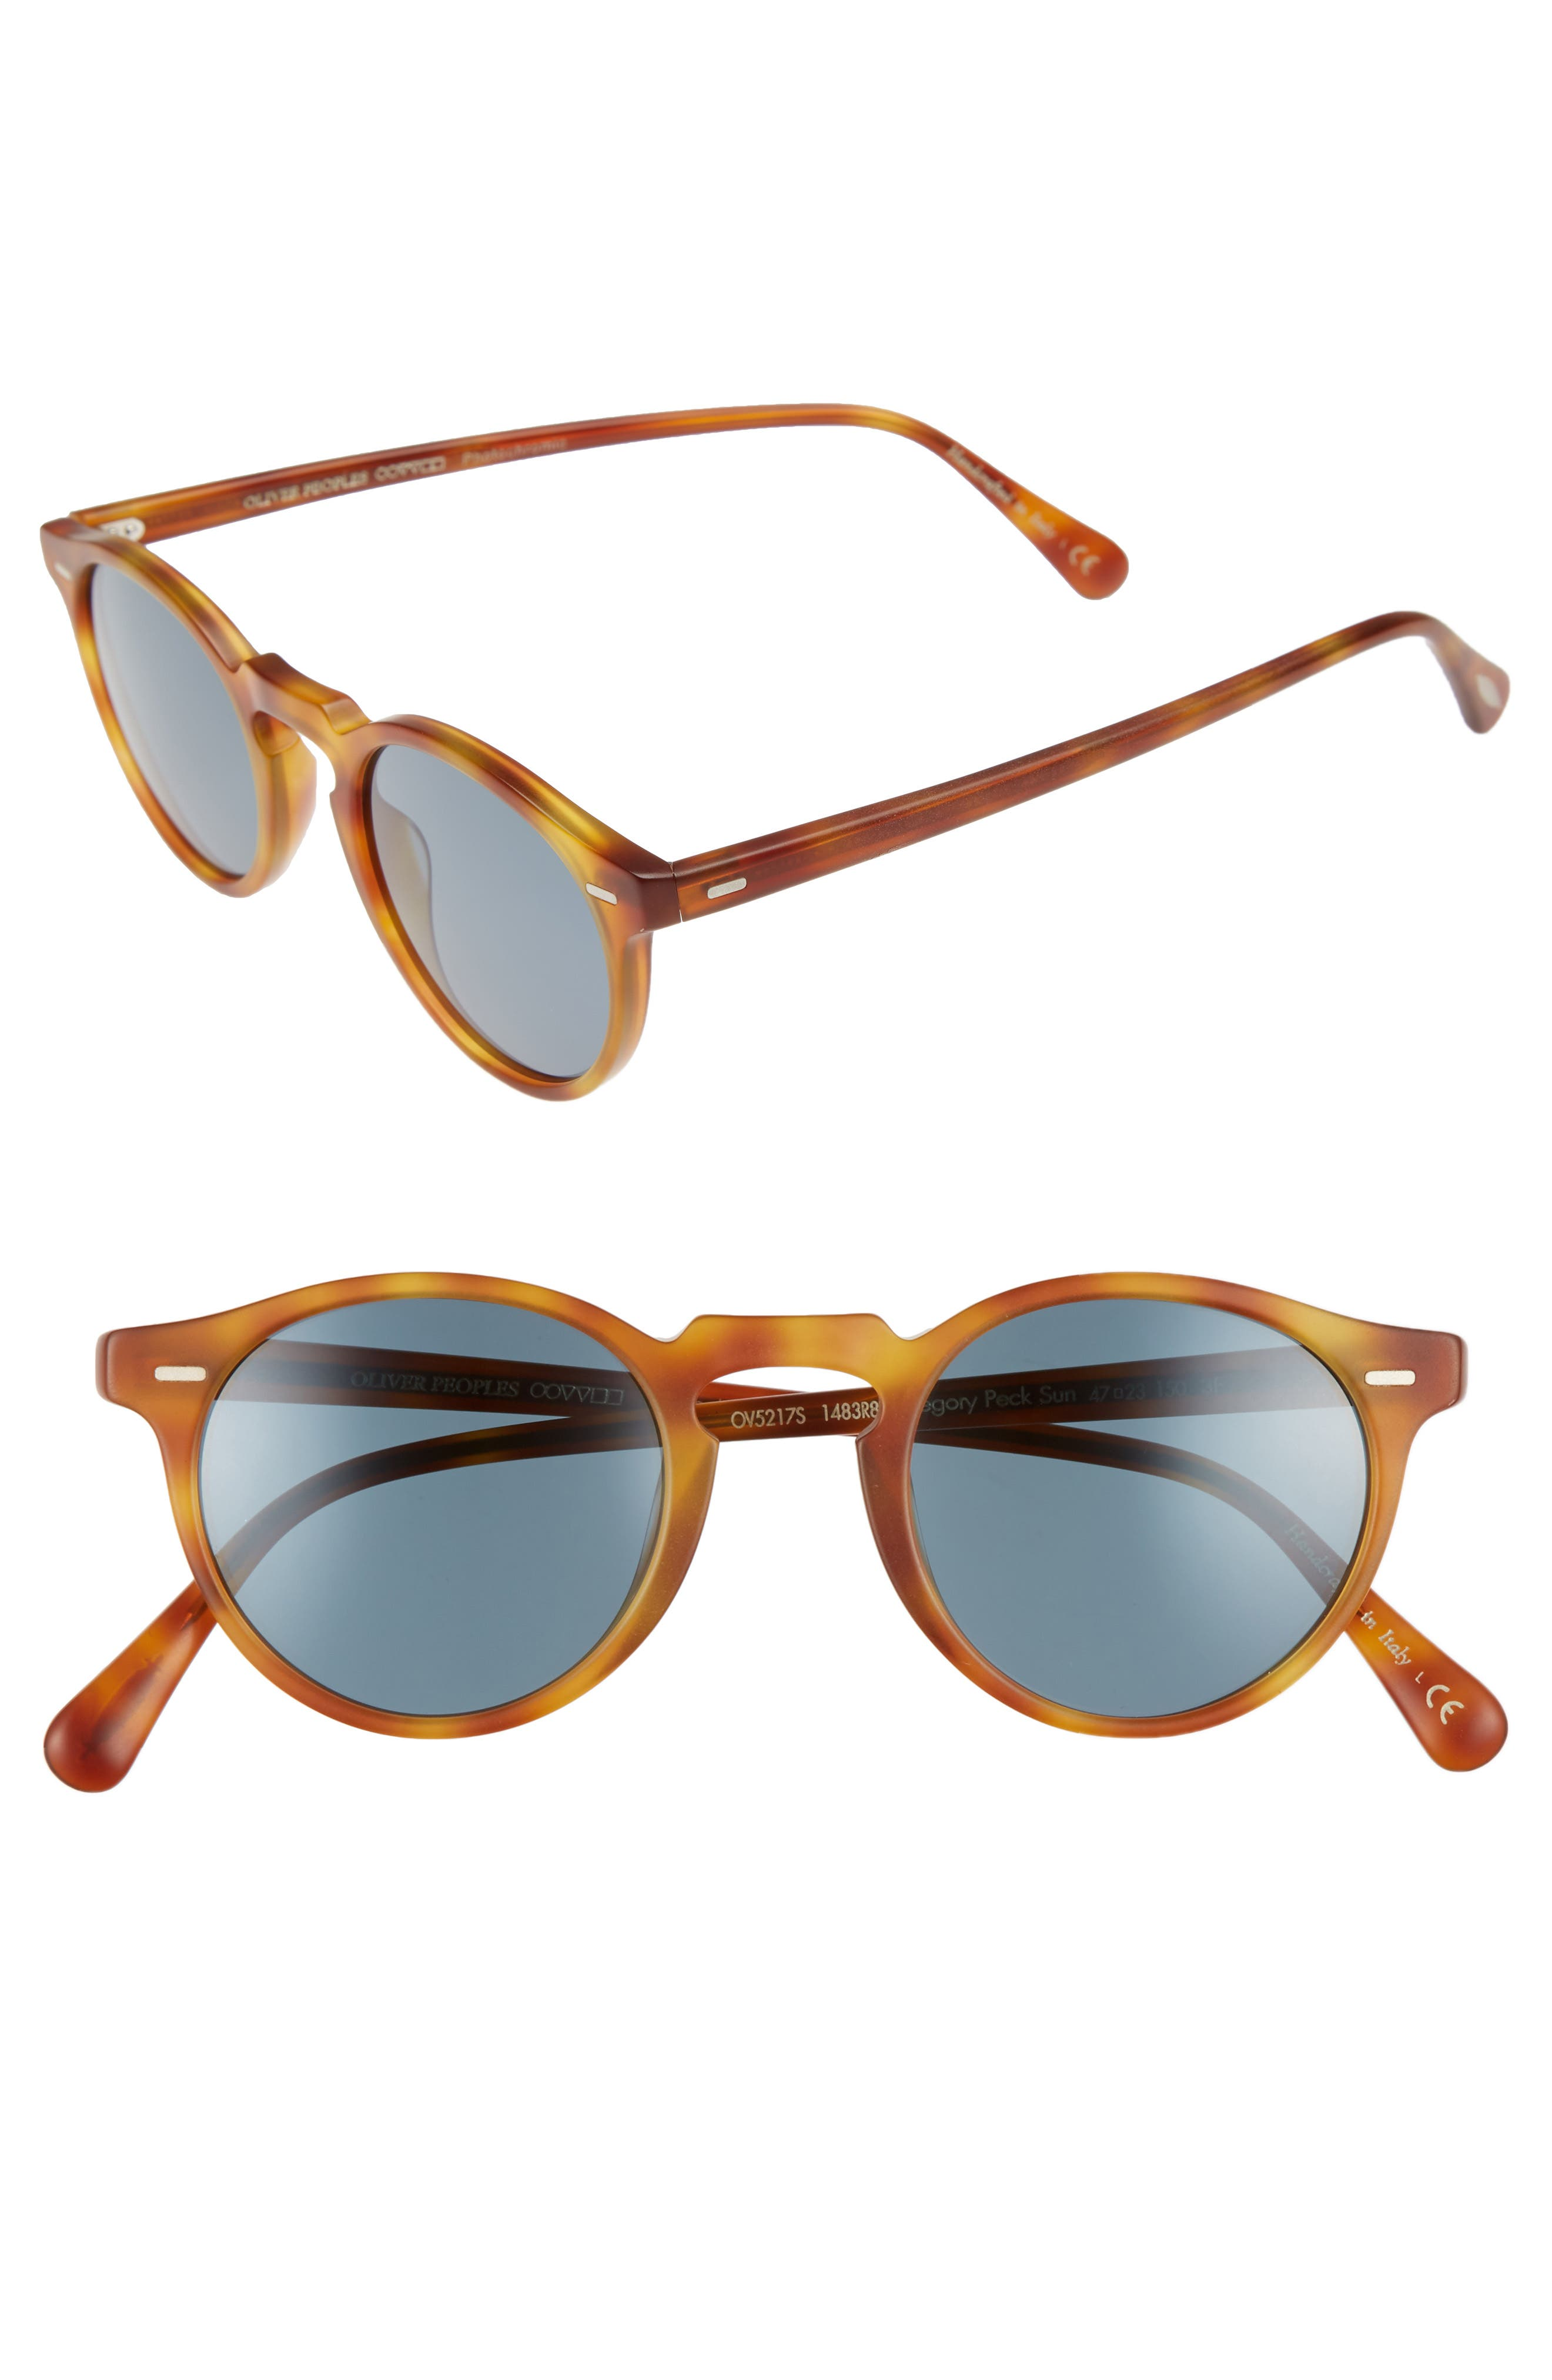 0bea13148b9 Oliver Peoples Gregory Peck 47Mm Round Sunglasses - Vintage Tortoise Brown